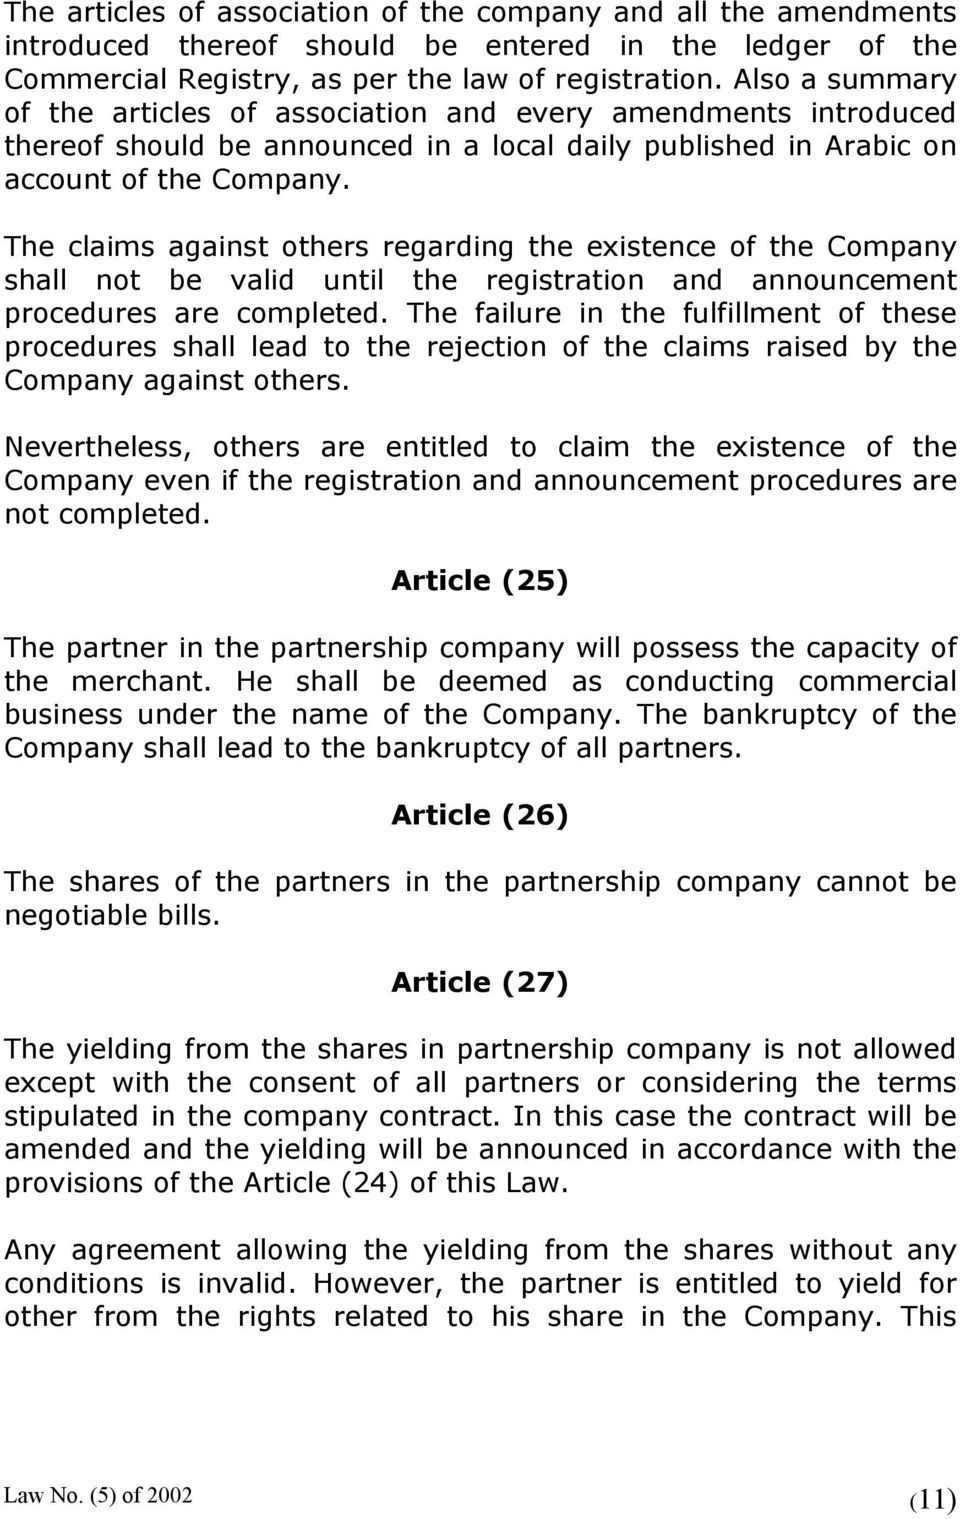 The claims against others regarding the existence of the Company shall not be valid until the registration and announcement procedures are completed.